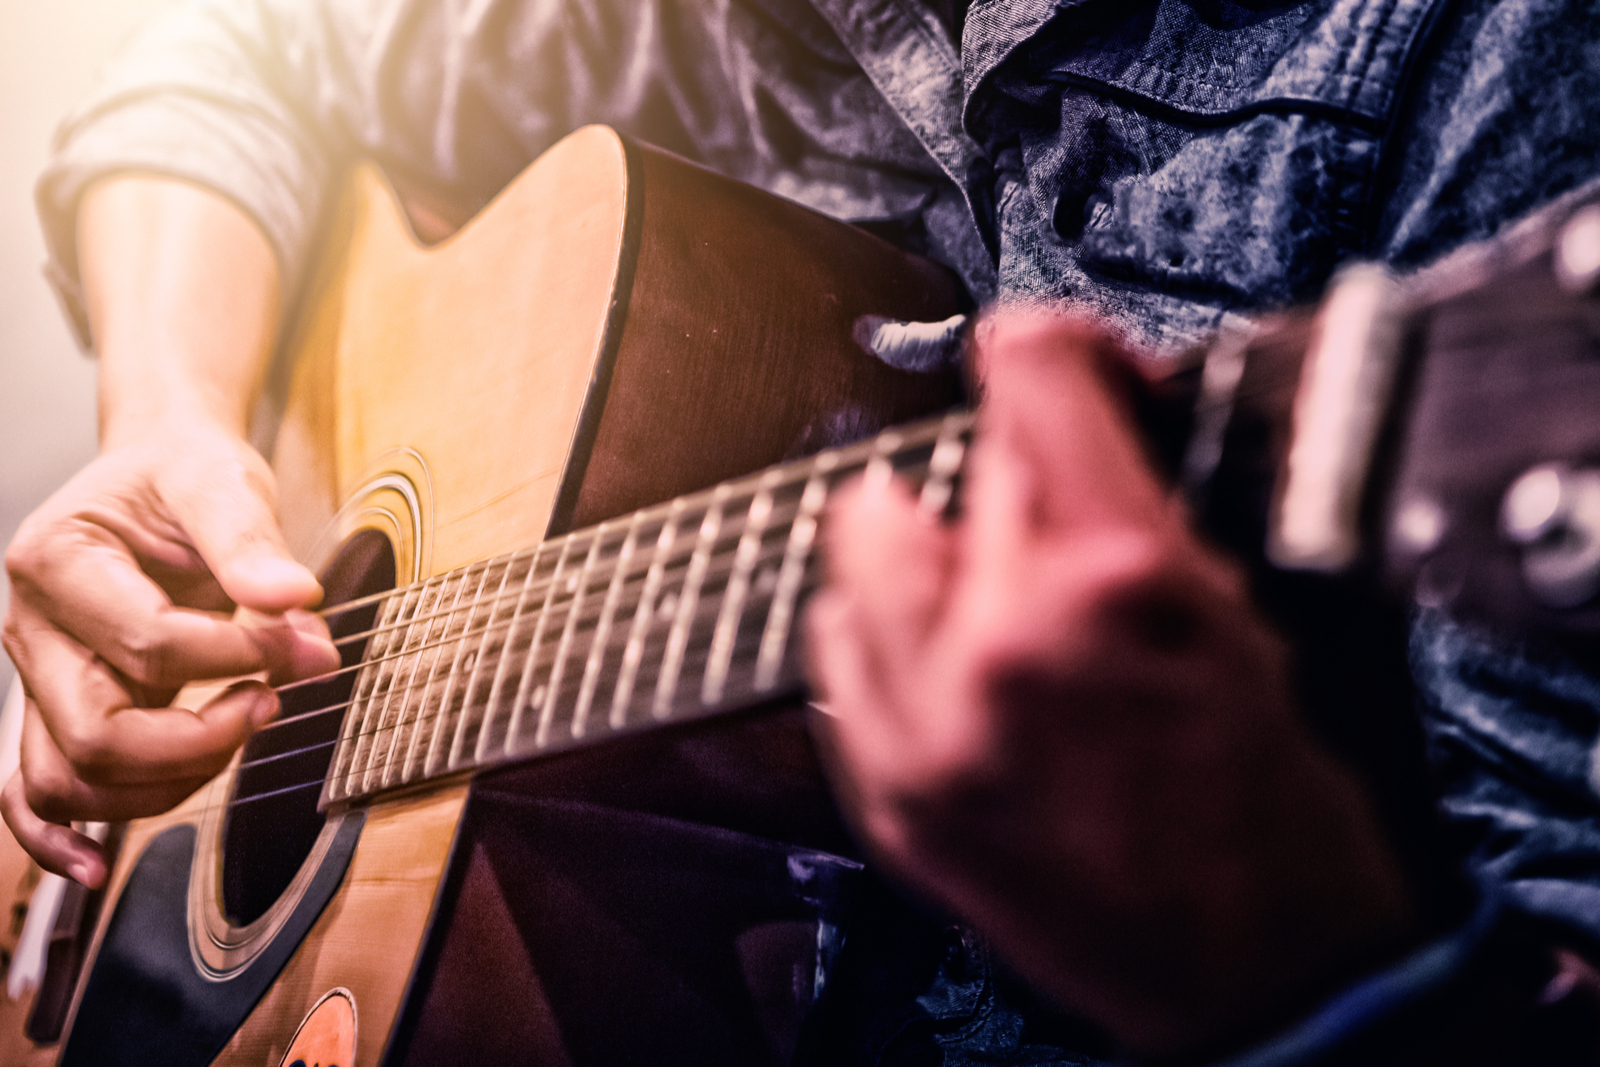 How To Play Guitar | How To Play Guitar For Beginners: A Step-by-Step Guide